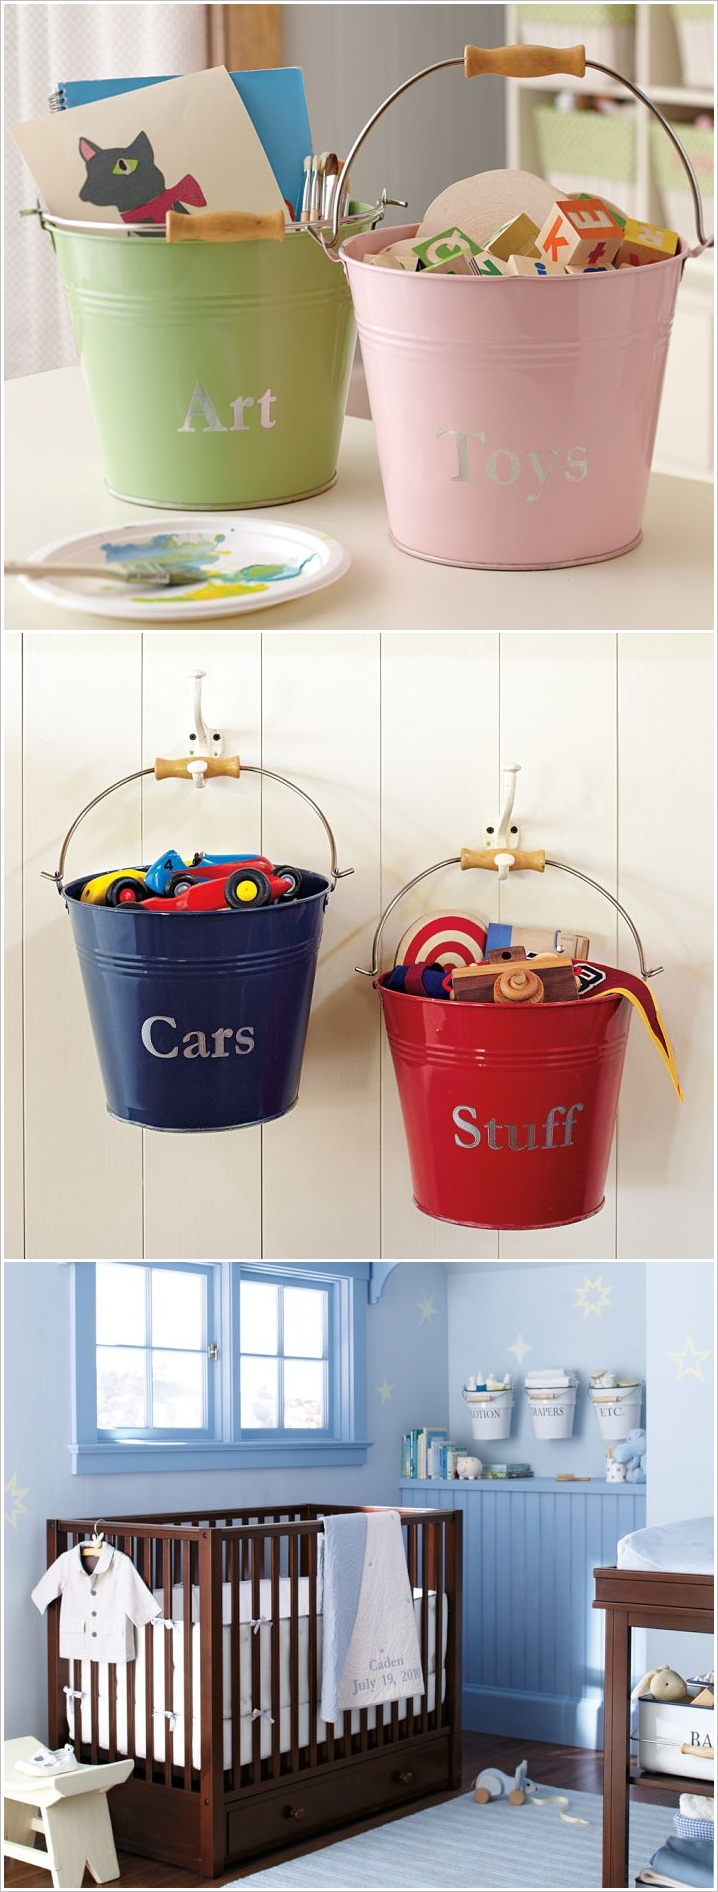 3 | Place Or Hang Metal Buckets For Storage